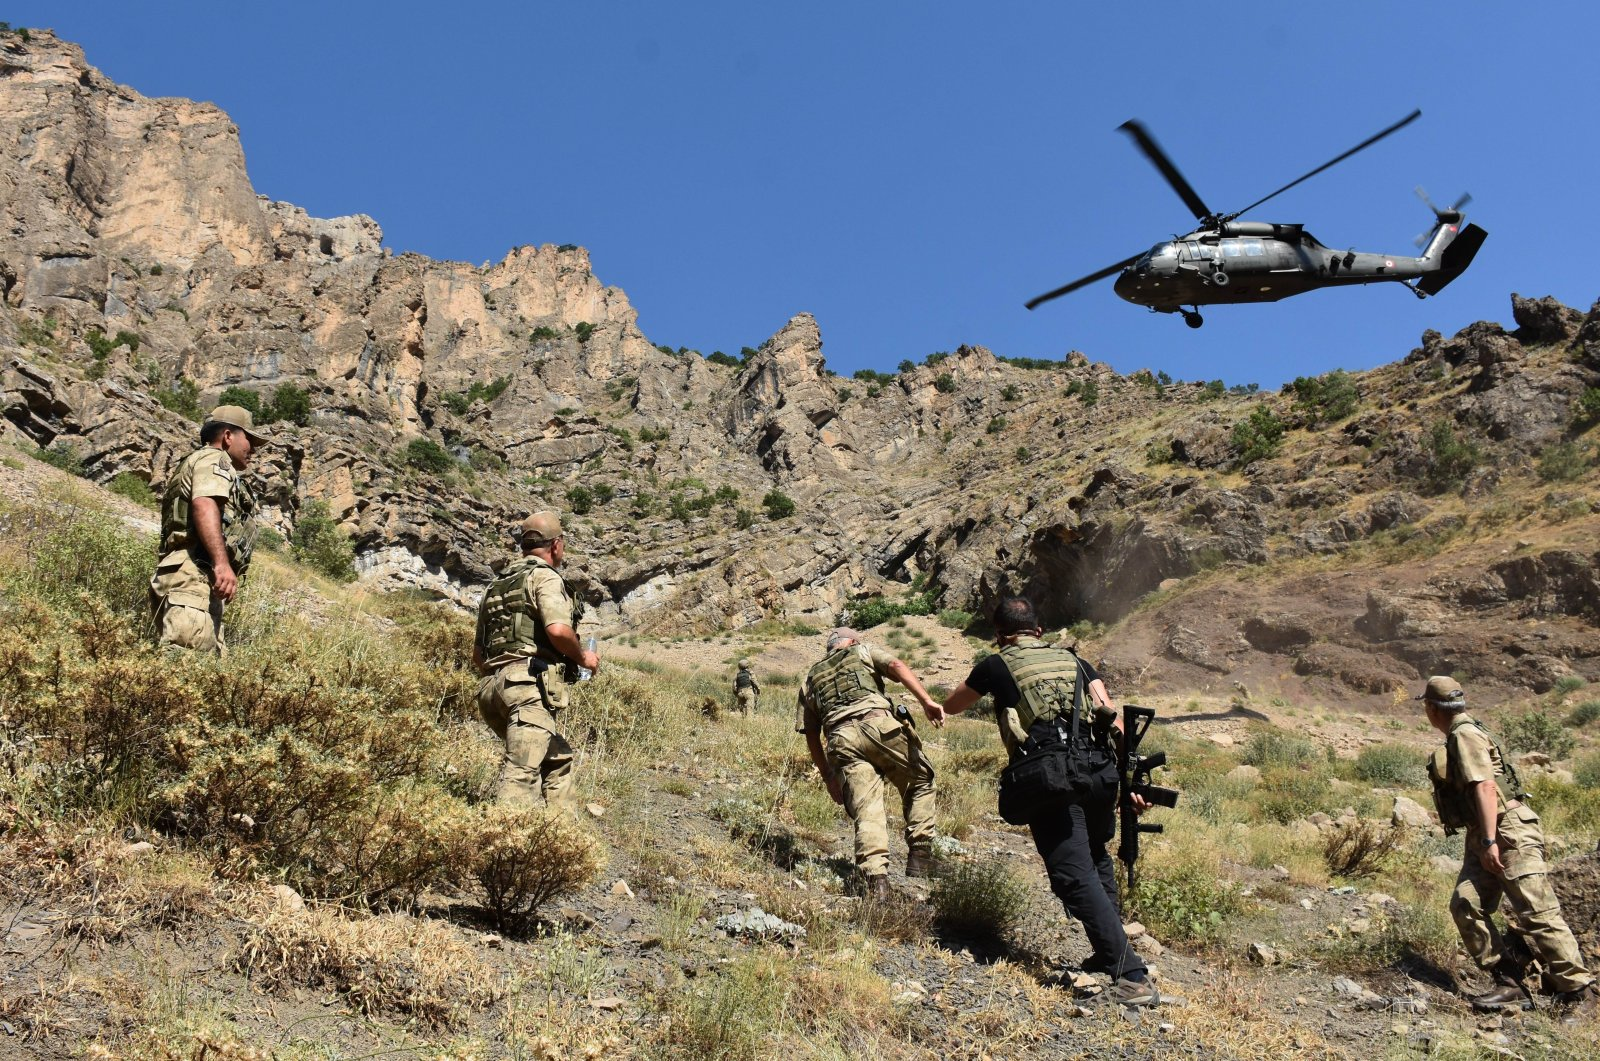 Turkish gendarmerie units take part in a counterterrorism operation against the PKK at an unidentified location in this undated file photo. (AA File Photo)